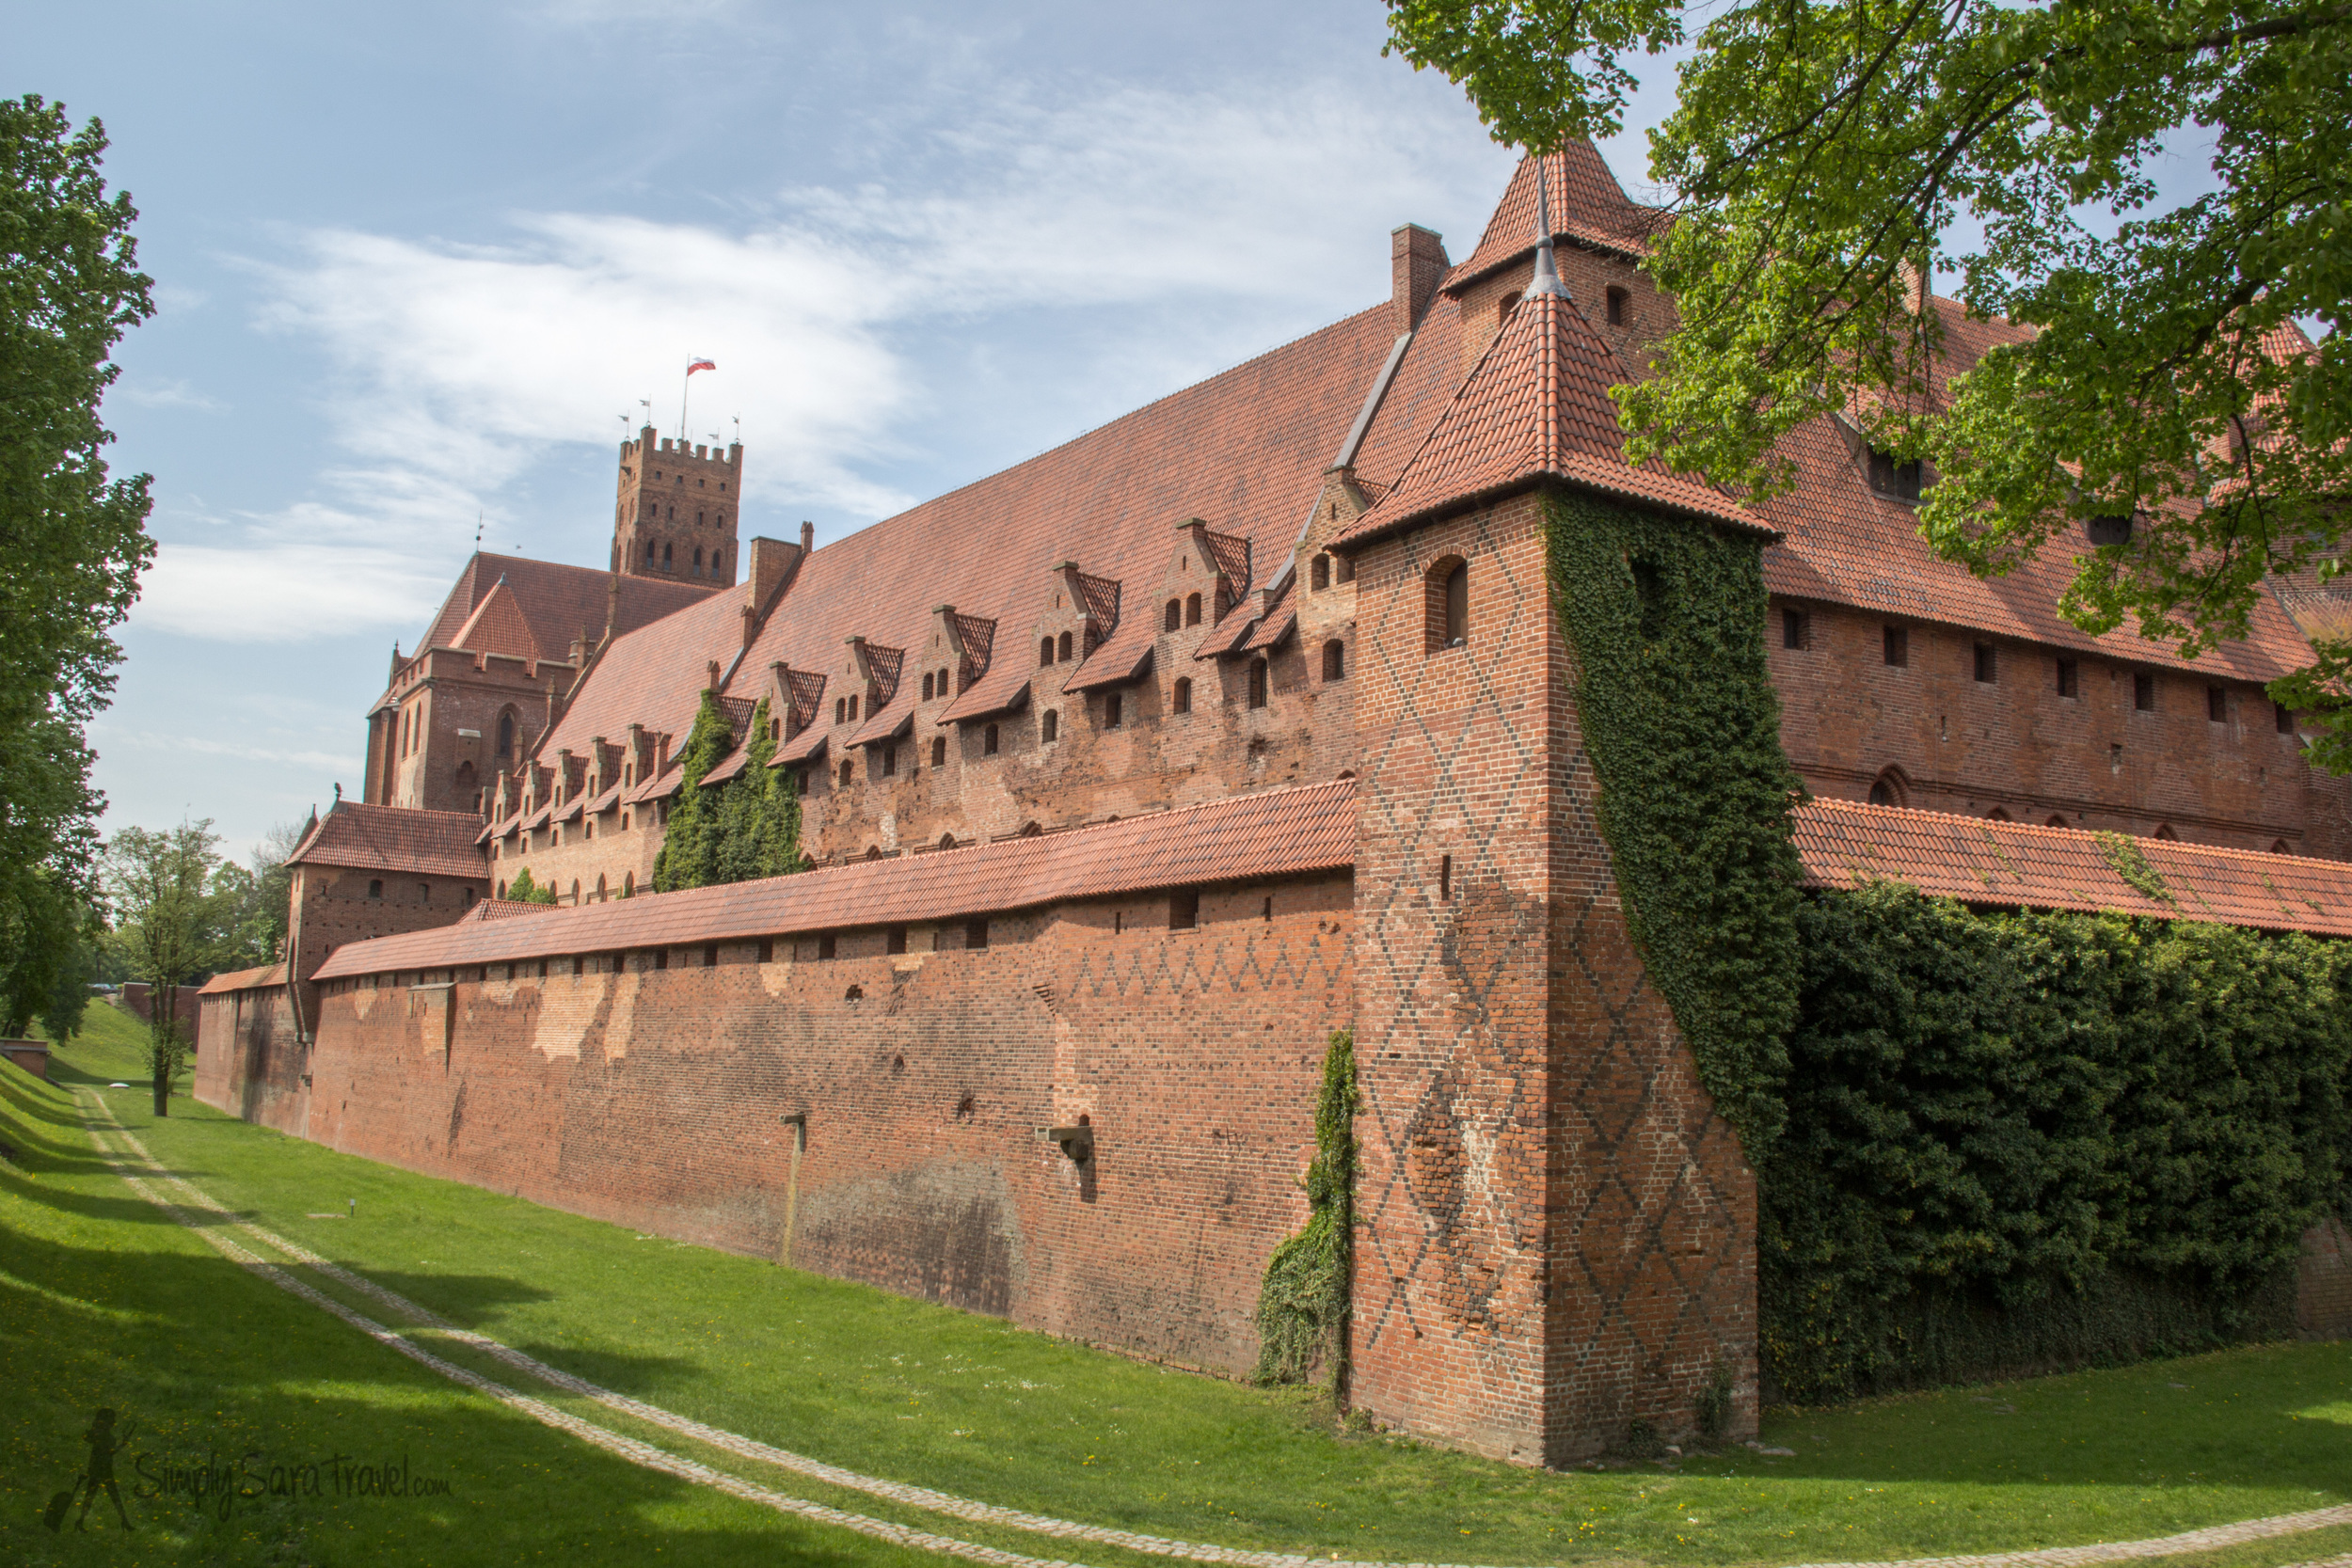 So much brick on the exterior of Malbork Castle, Poland